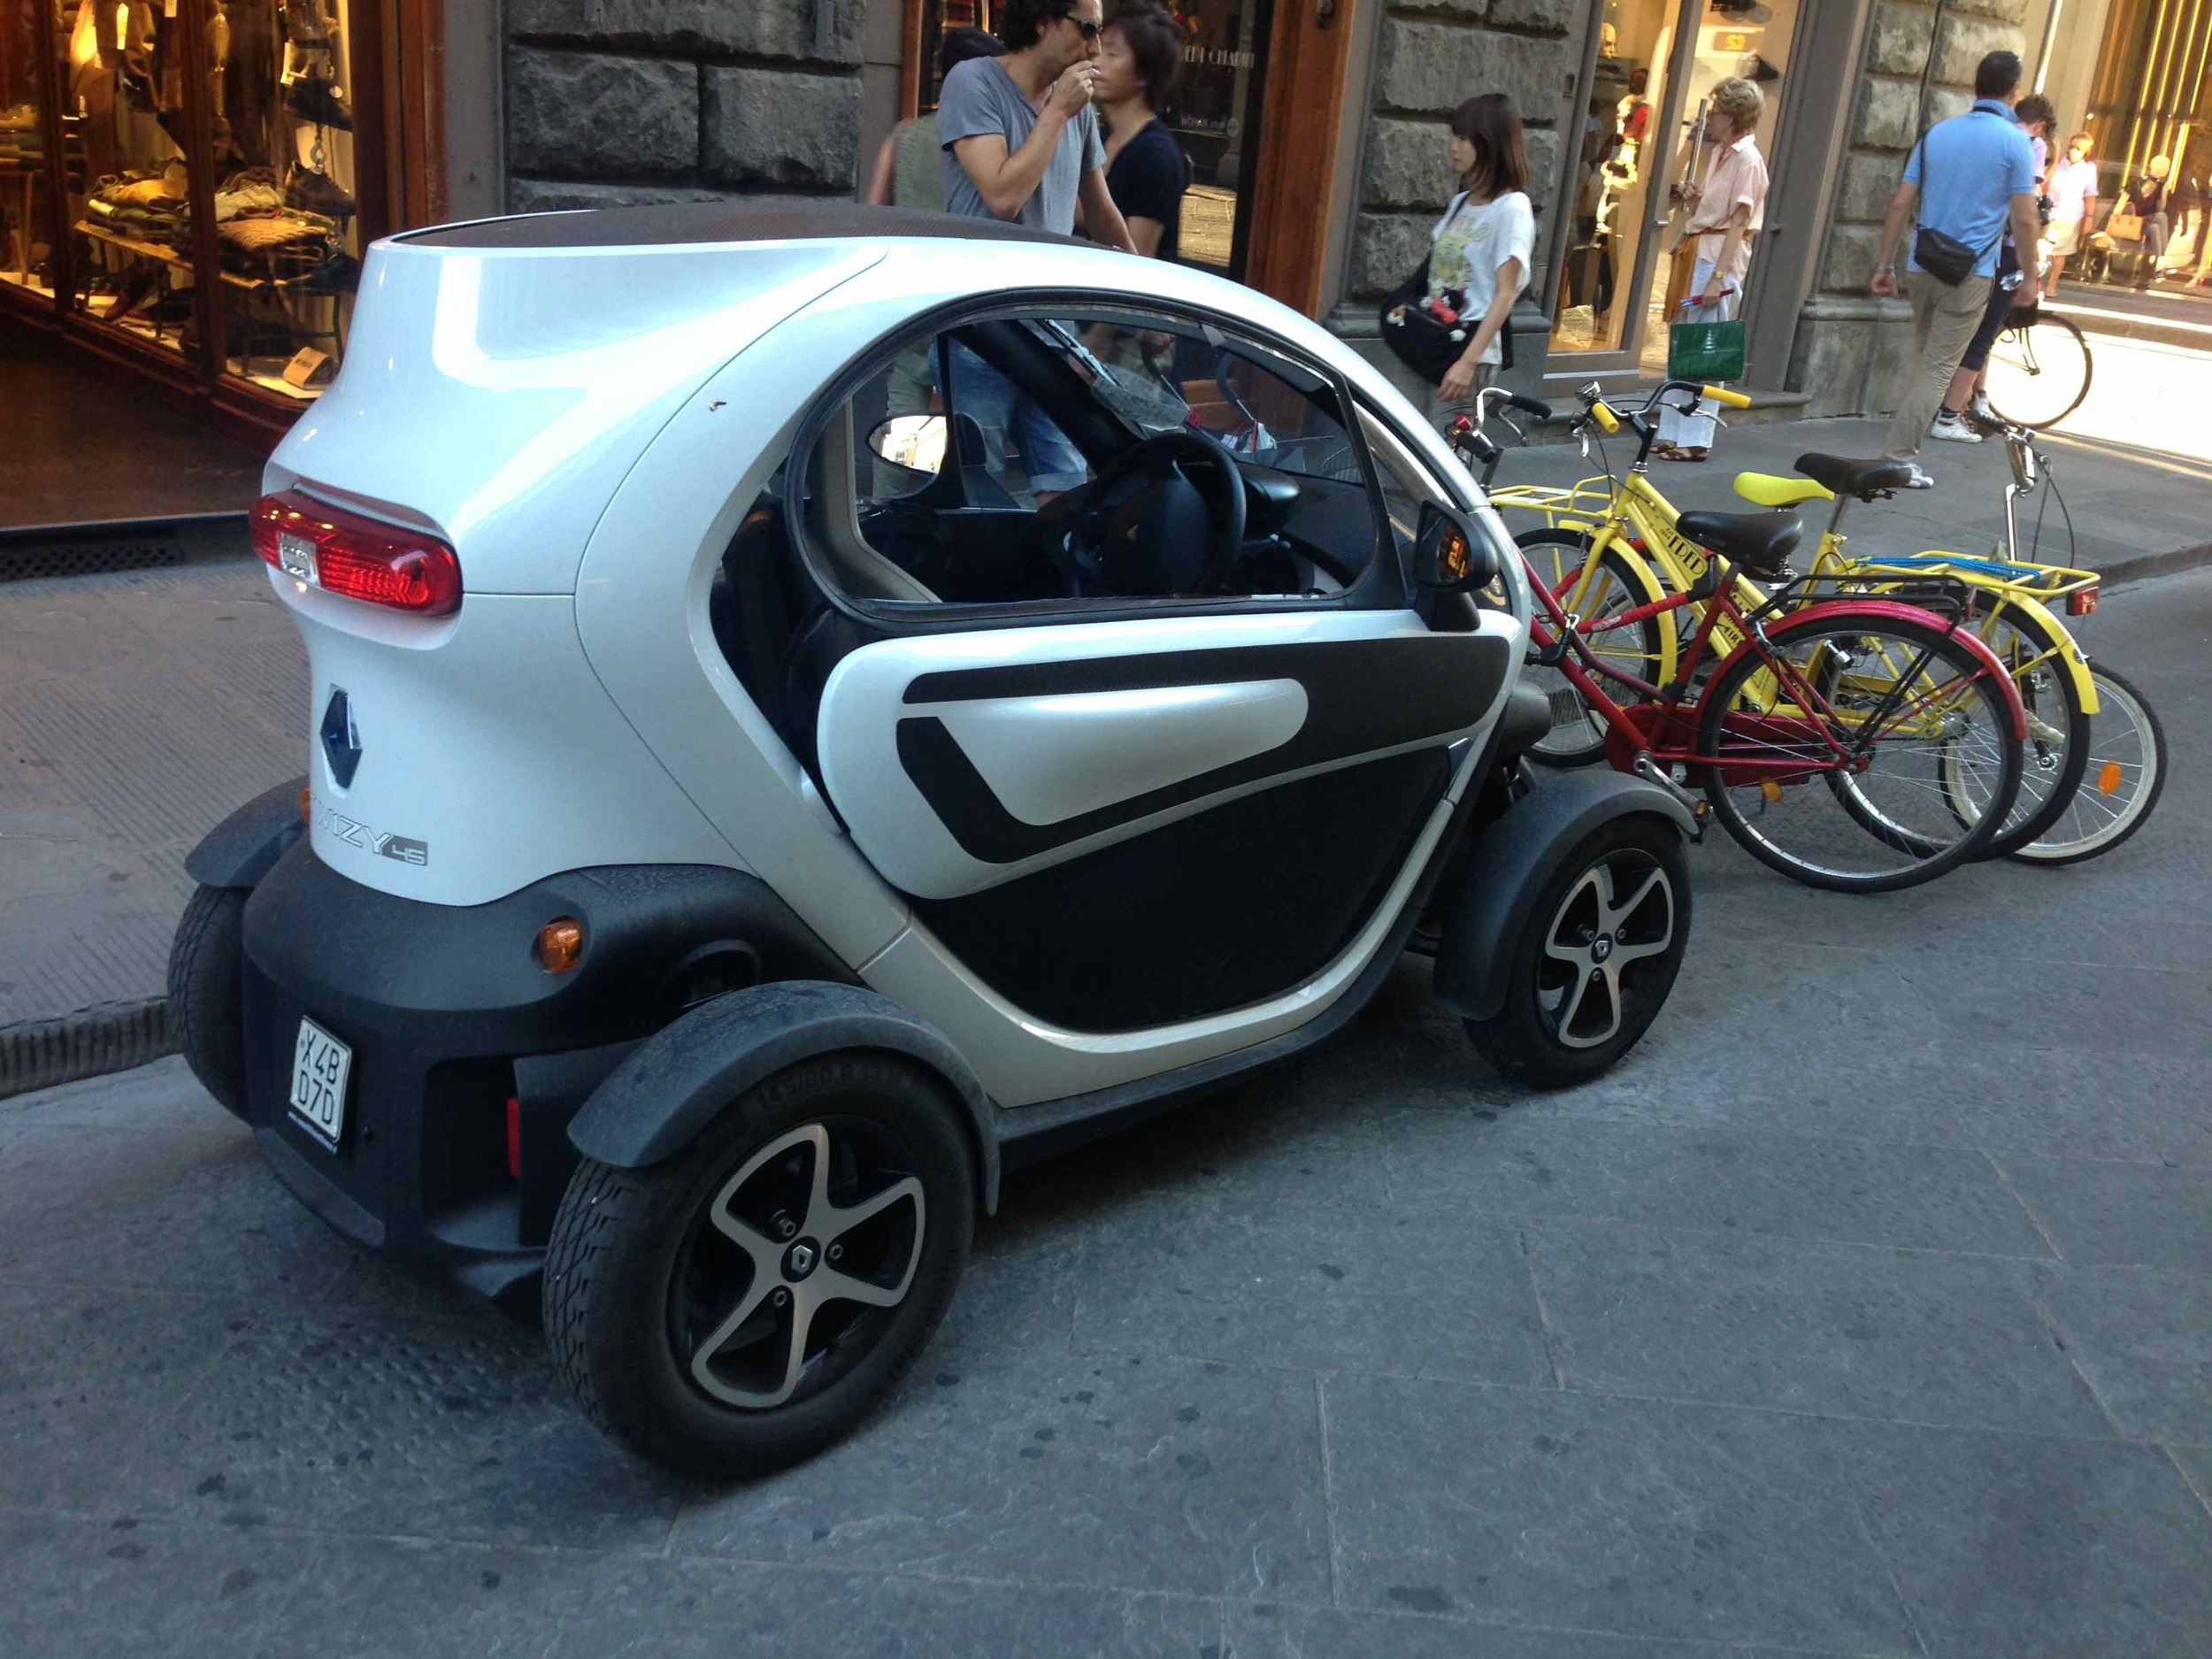 """Renault Twizy, which offers a """"1+1"""" seating layout for the driver and a (very small) passenger behind, in Florence, Italy (Photo: The Car Crush)"""